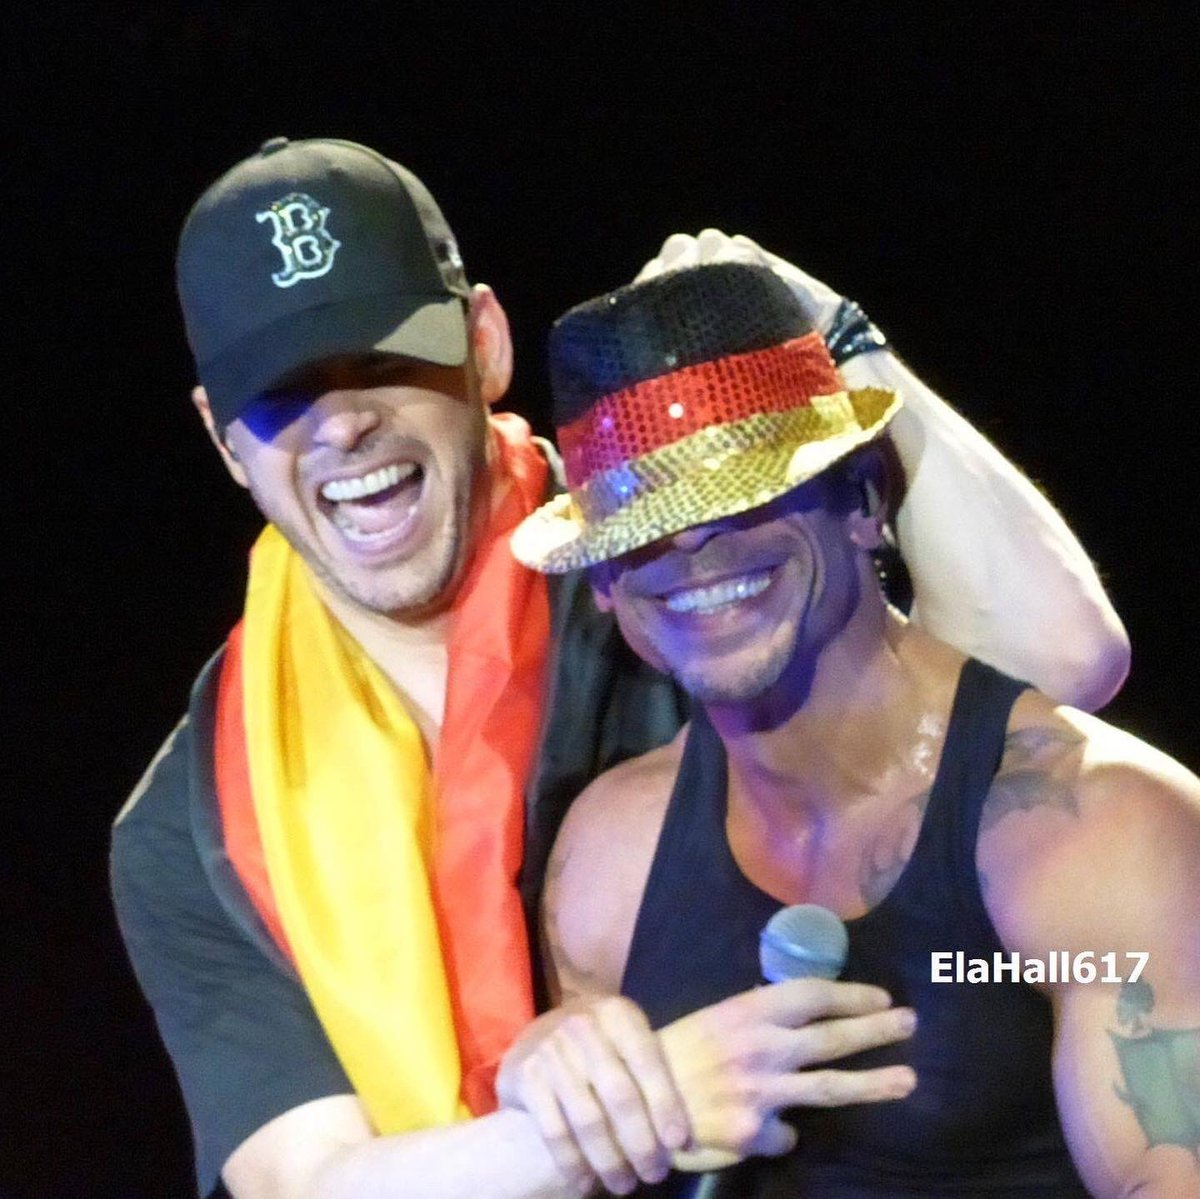 Love sharing some of my favorite shots here few pics from @donniewahlberg #keeponsmiling #SpreadLove #concertphotography #hobbyphotography #passion #bhlove #love #newkidsontheblock #donniewahlberg #smile #lovehissmile #happyplace #feeltheberg #nkotbmemories @nkotb pic.twitter.com/4hPojEqd8d